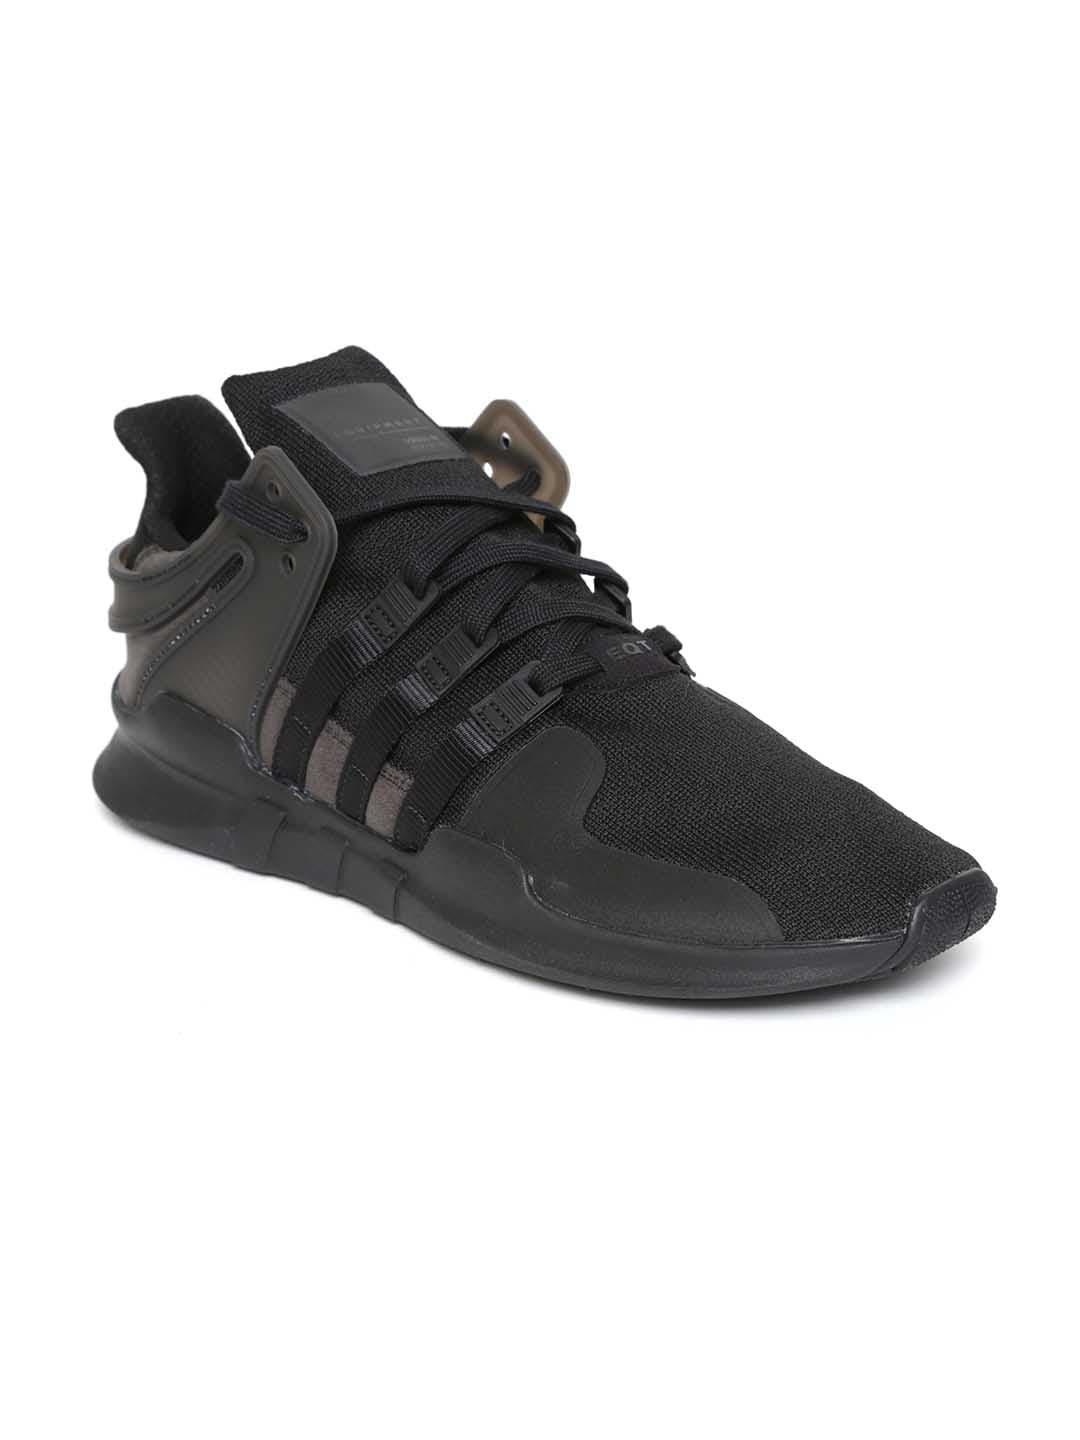 38d470c8bdeda8 Buy ADIDAS Originals Men Black EQT Support Advance Woven Design ...